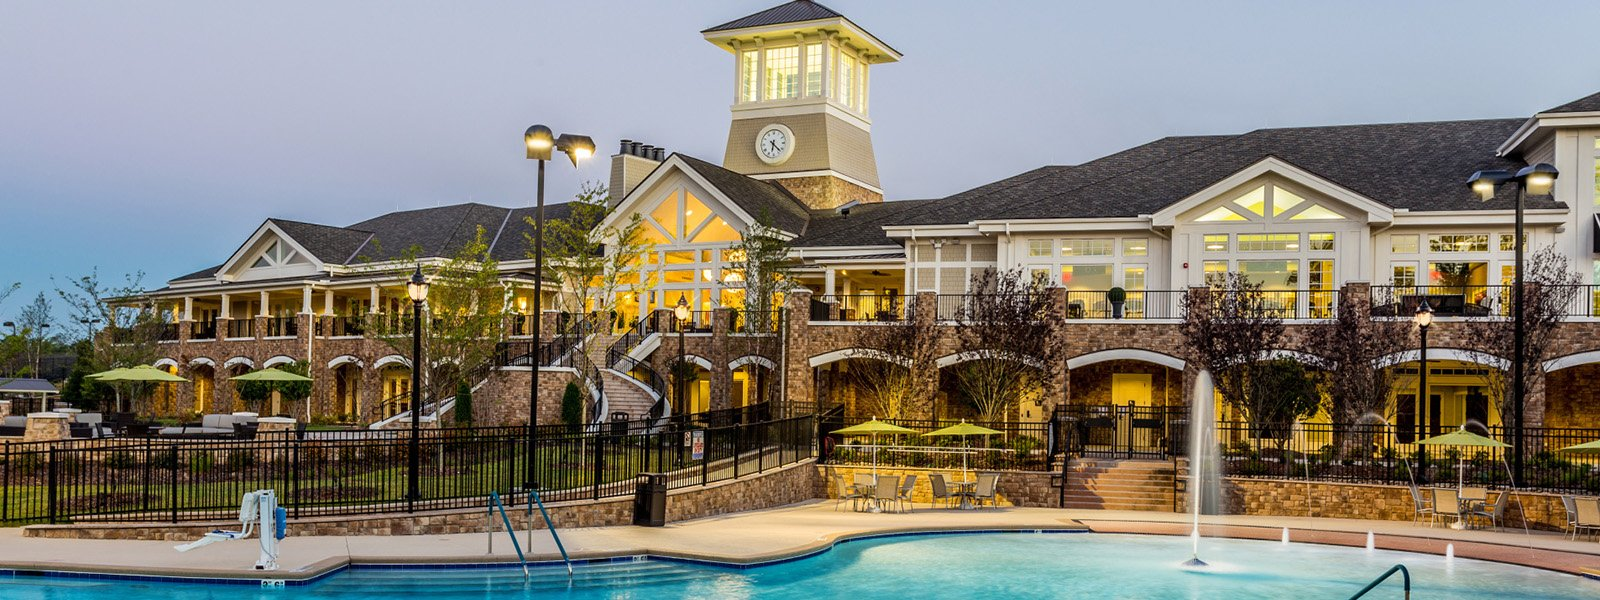 Carolina Arbors Del Webb | New Homes Durham NC Retire North Carolina